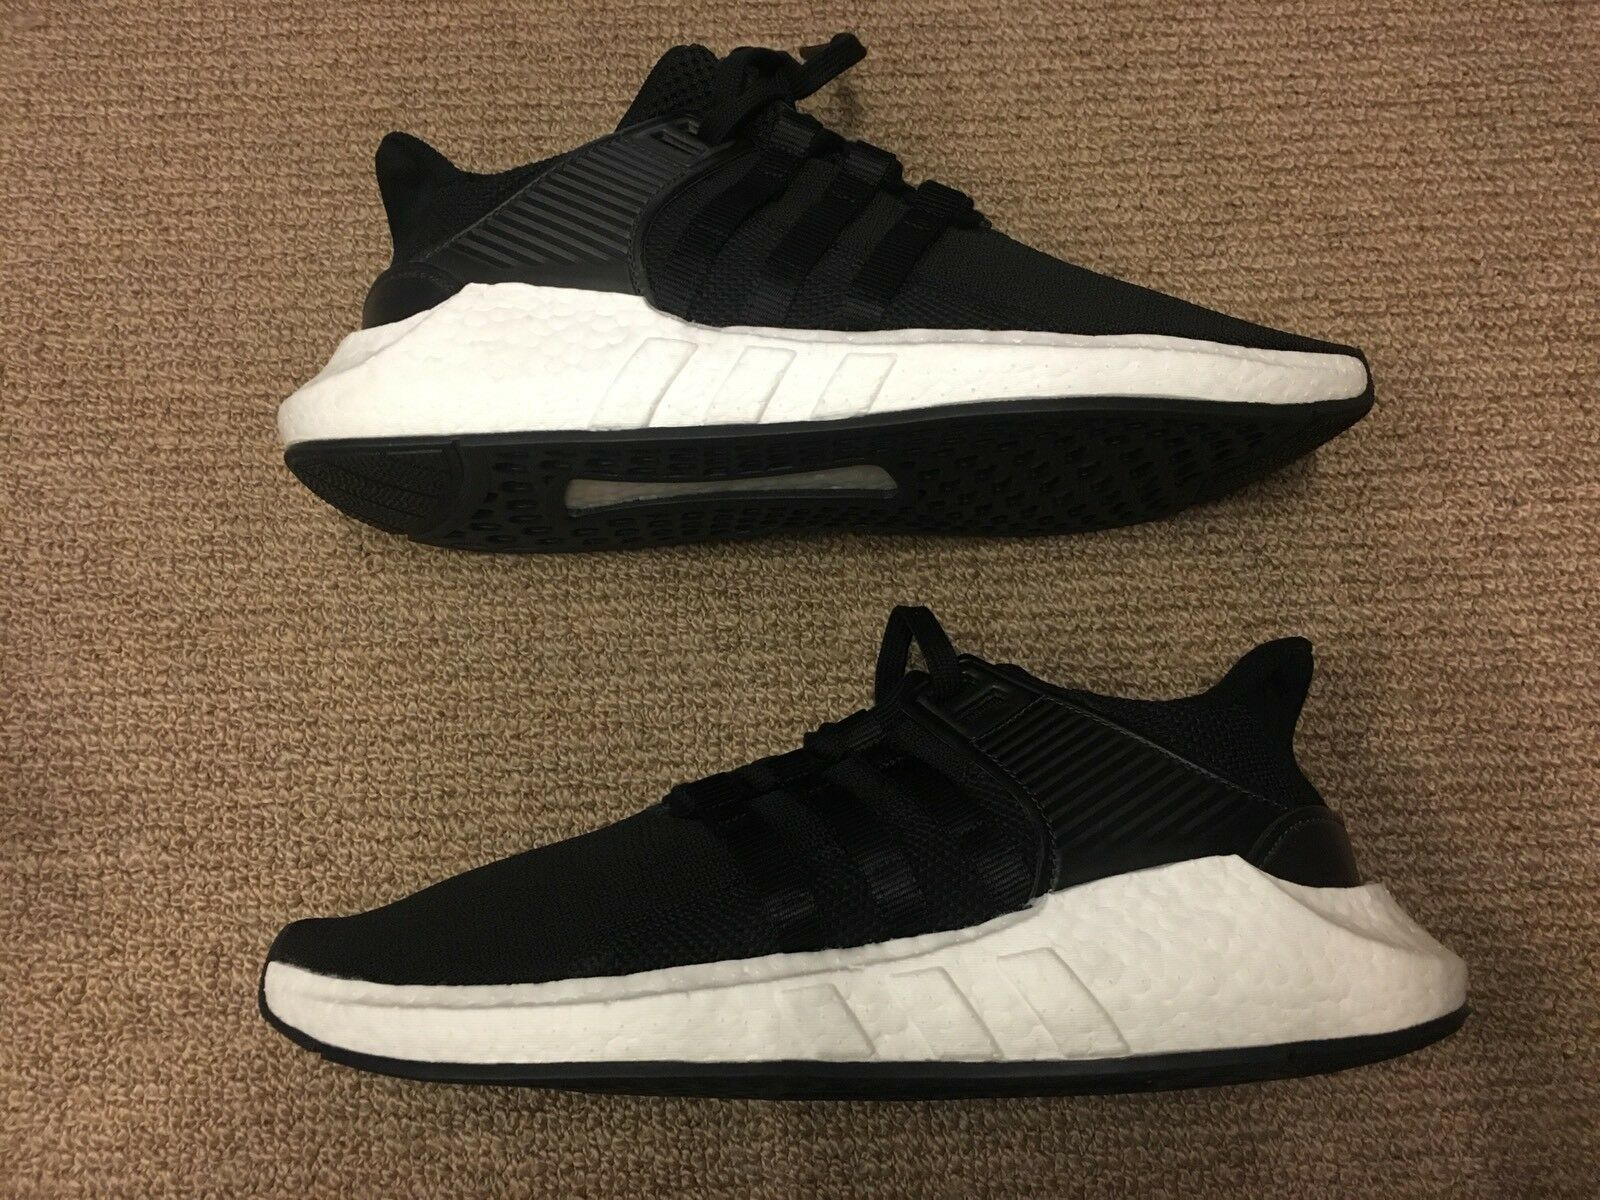 ADIDAS EQT Support 93/17 - BB1236 Milled Leather - US 11.5